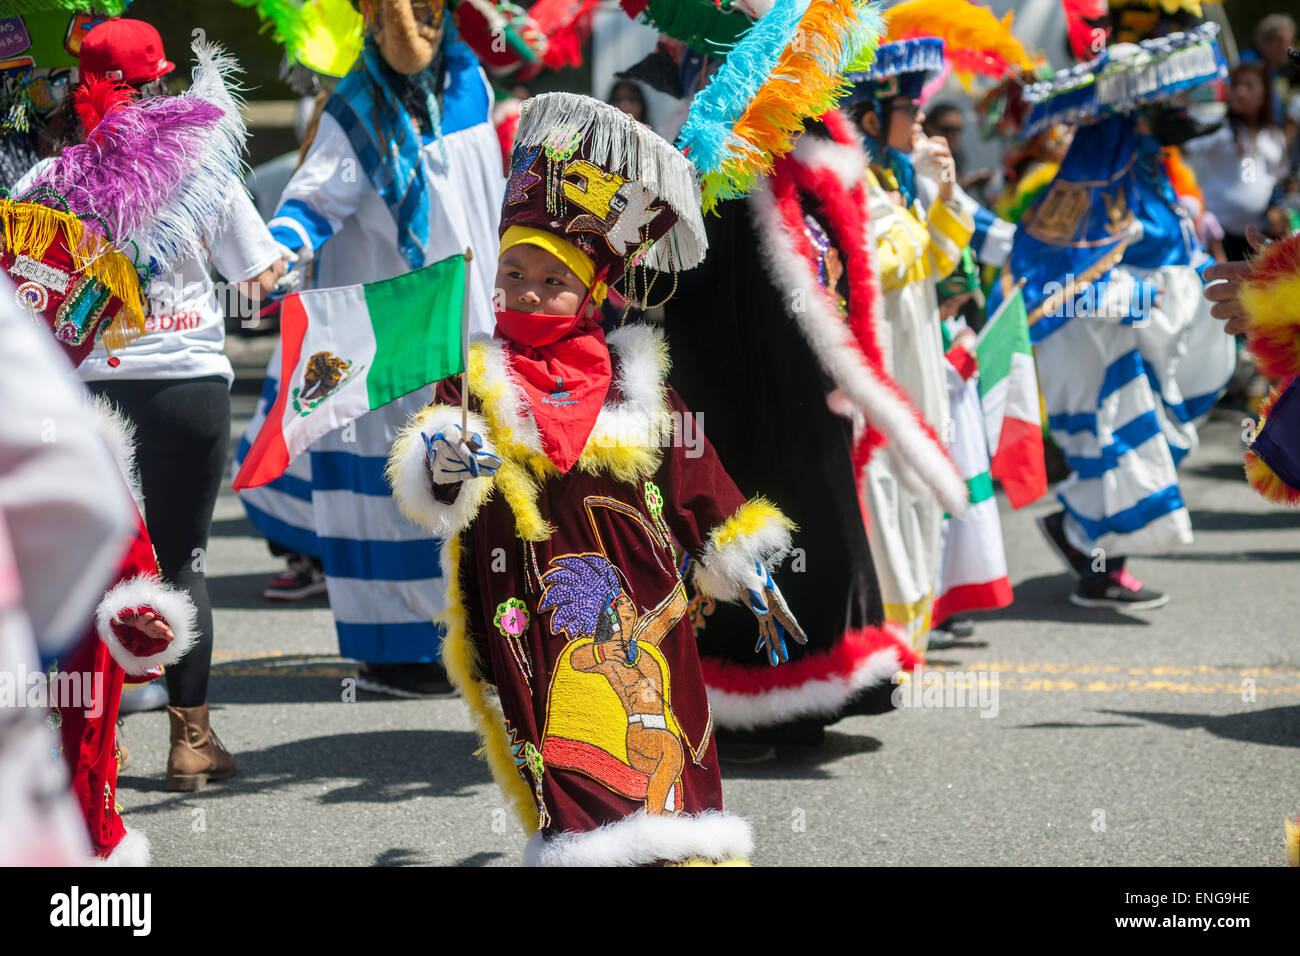 Folk Dancers In The Cinco De Mayo Parade In New York On Sunday May 3 2015 The Holiday Commemorates A Victory Of Mexican Forces Led By General Ignacio